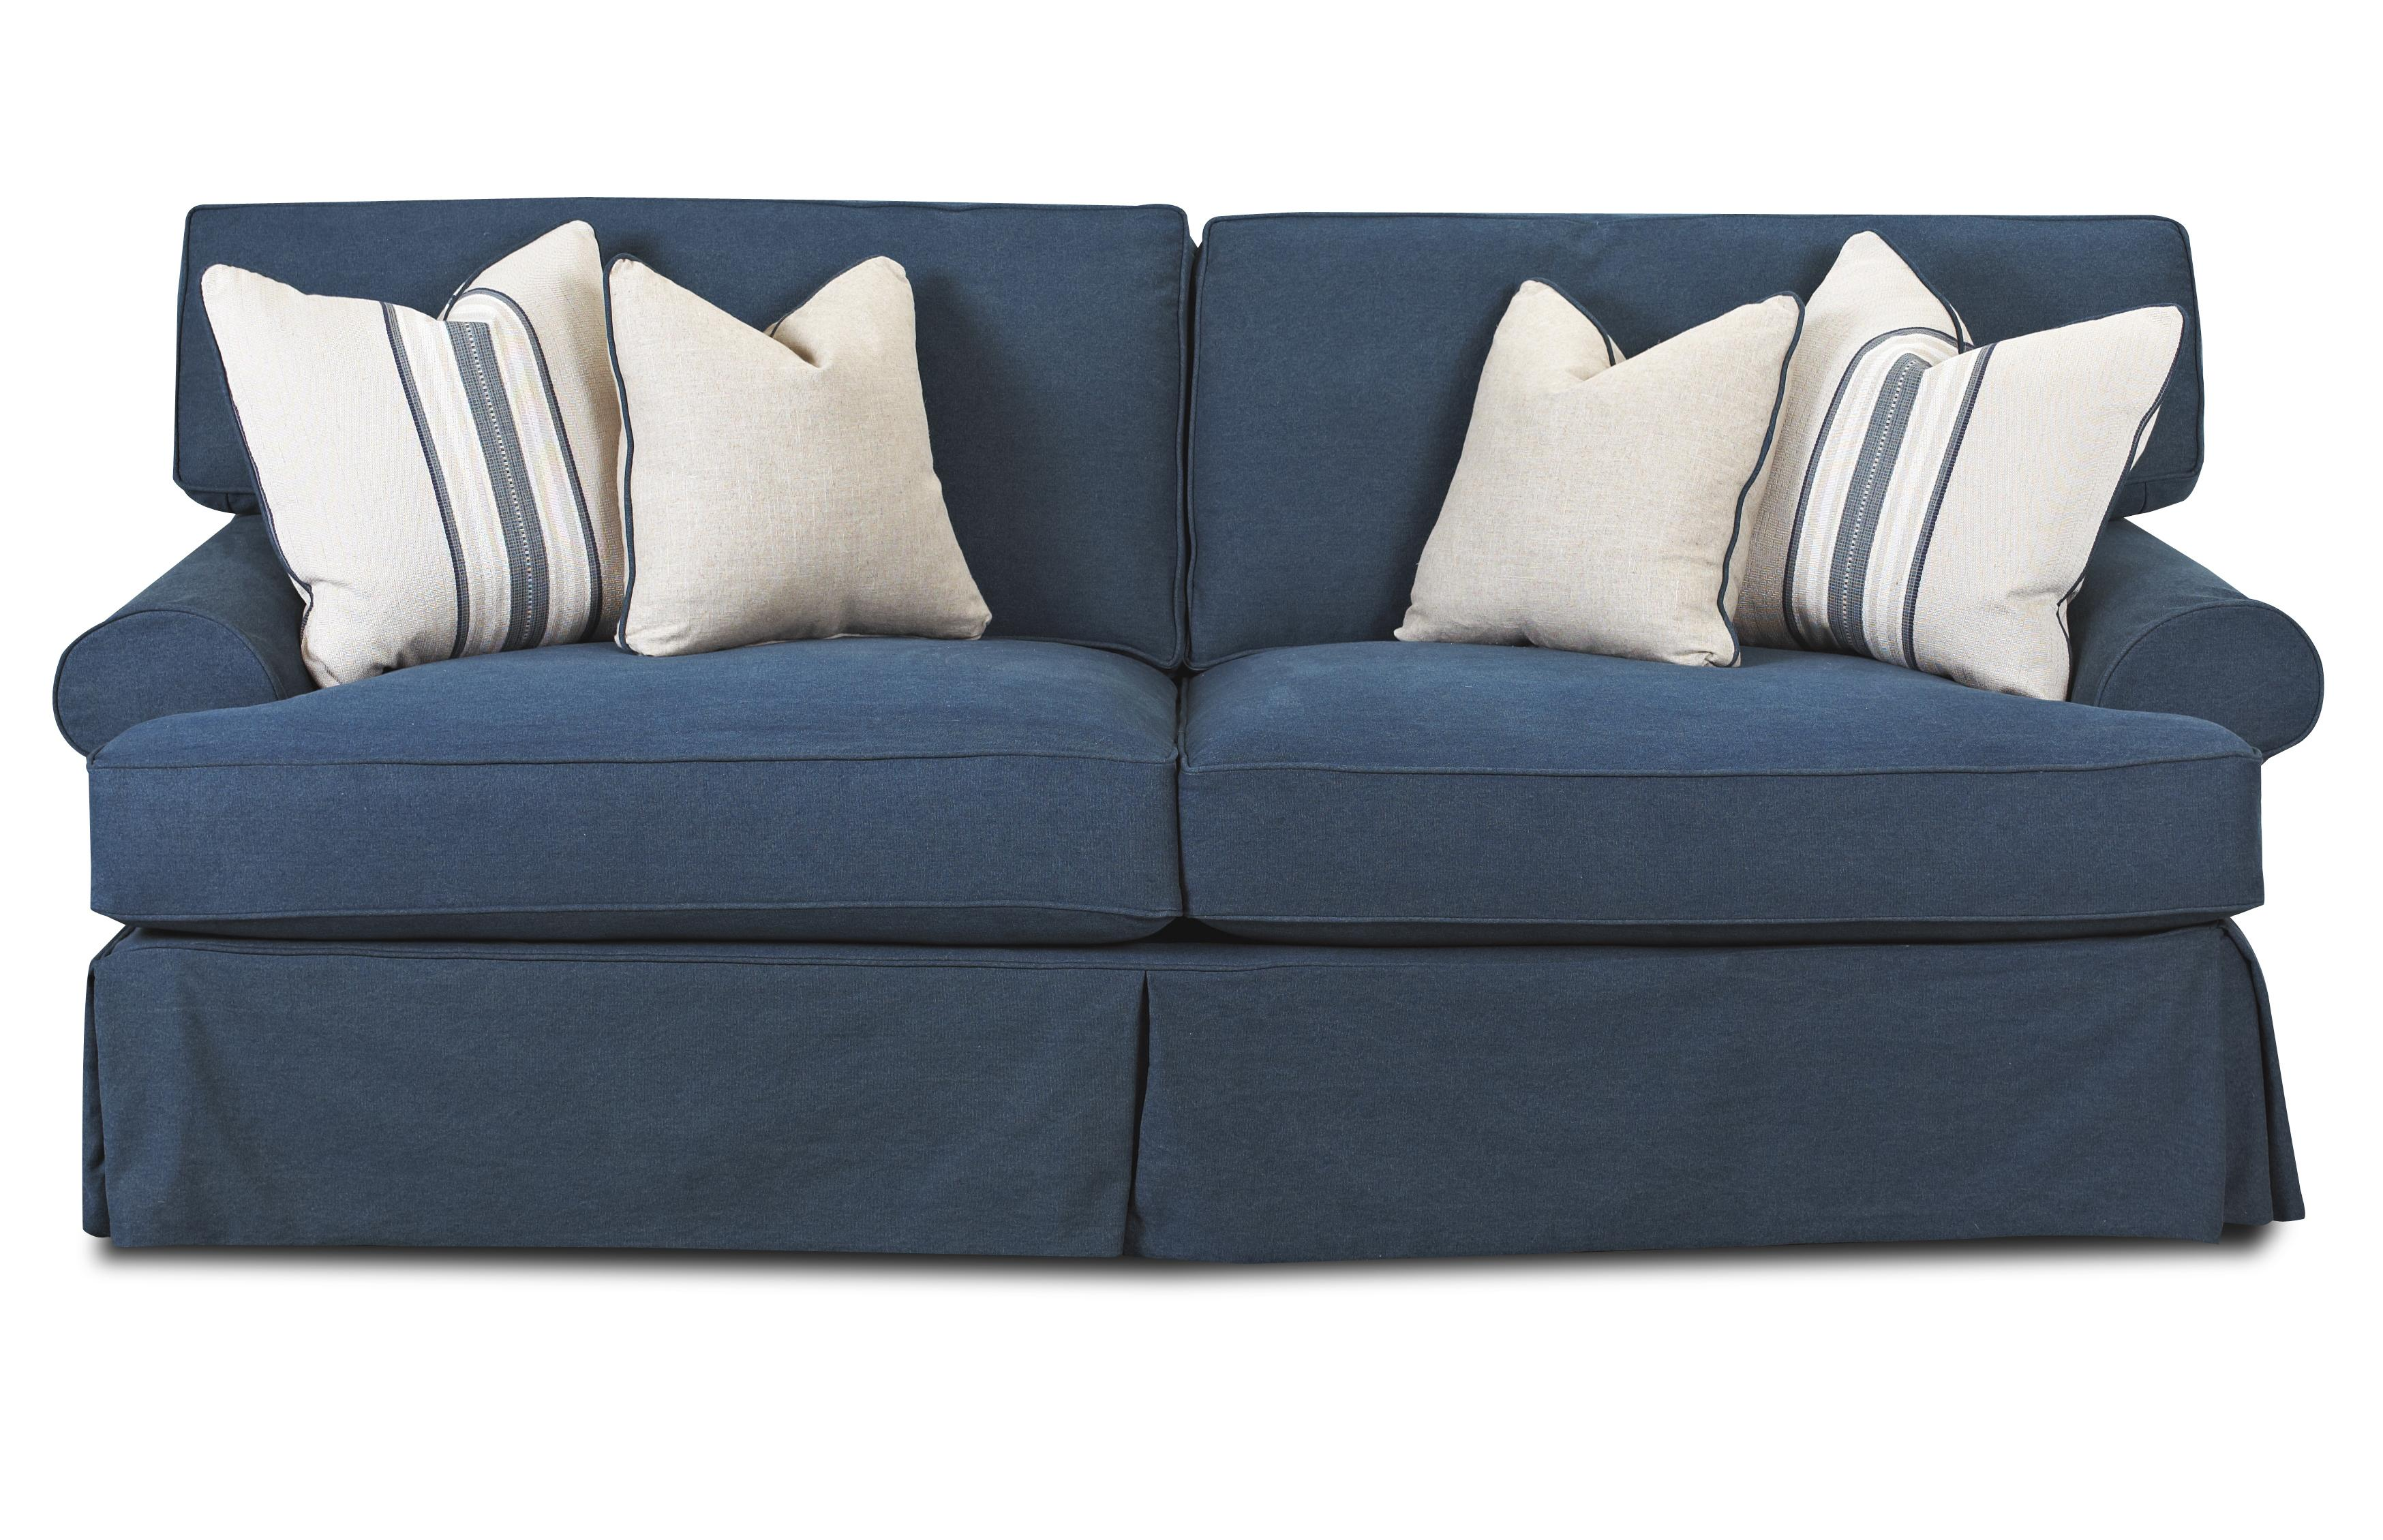 Enso Memory Foam Sleeper Sofa